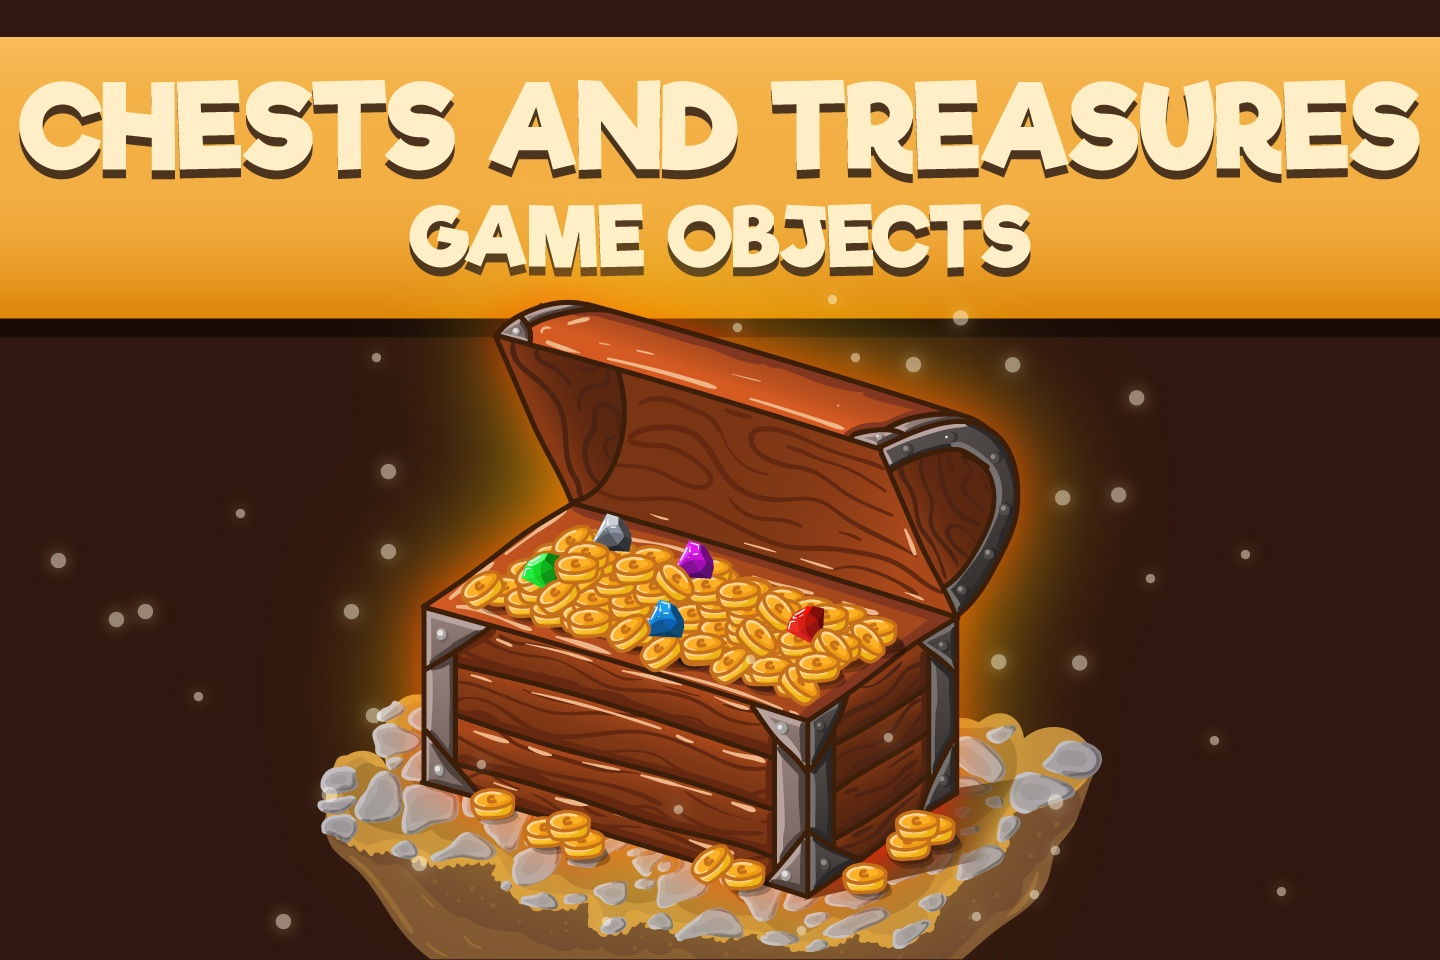 Chests and Treasures 2D Game Objects